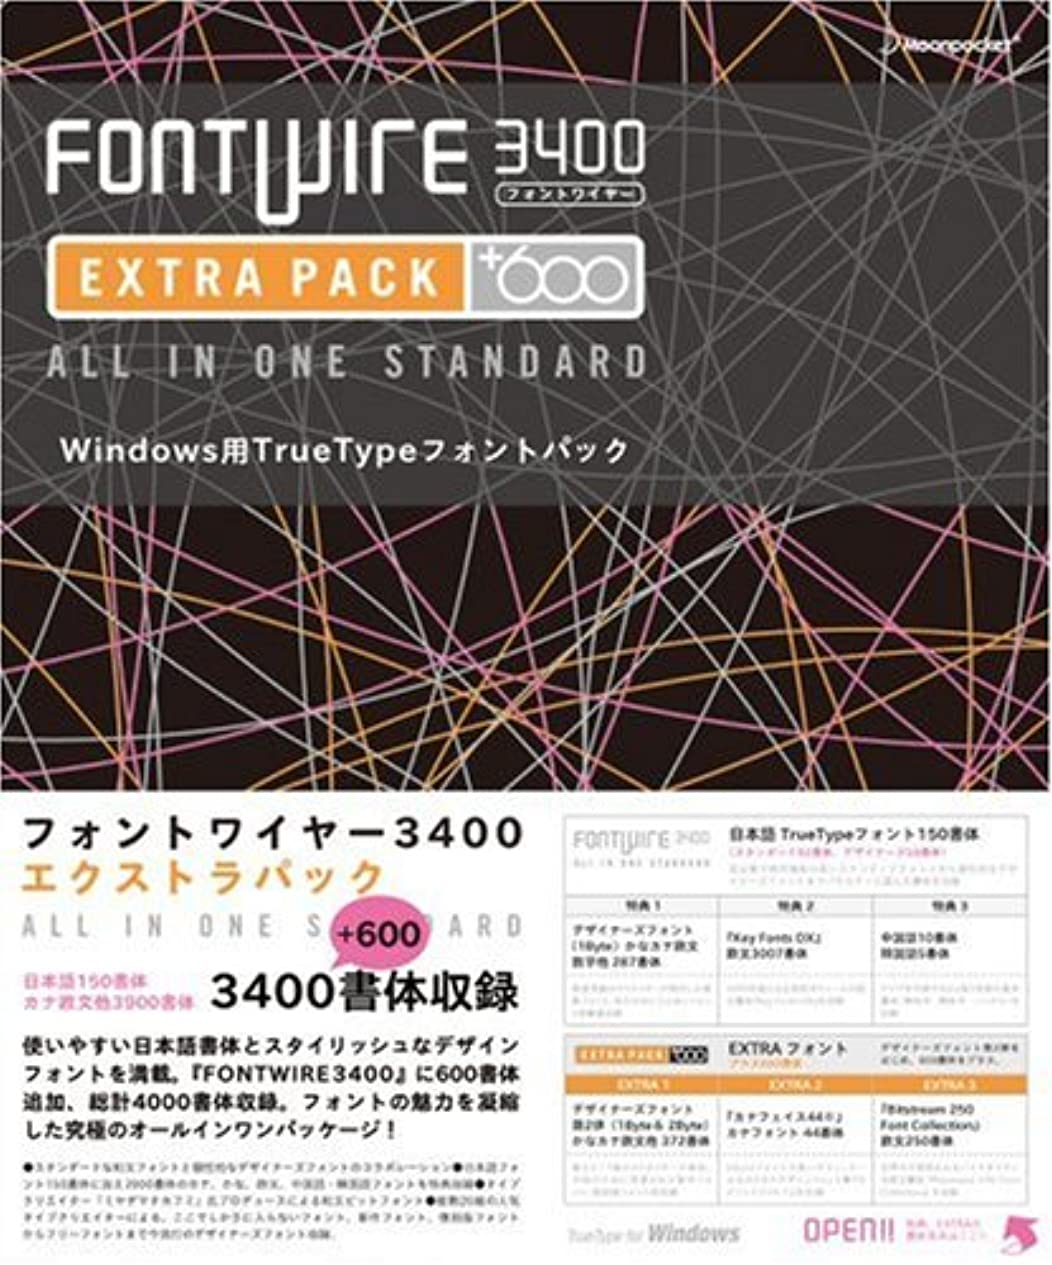 変成器もの素敵なFONTWIRE 3400 EXTRAPACK for Windows